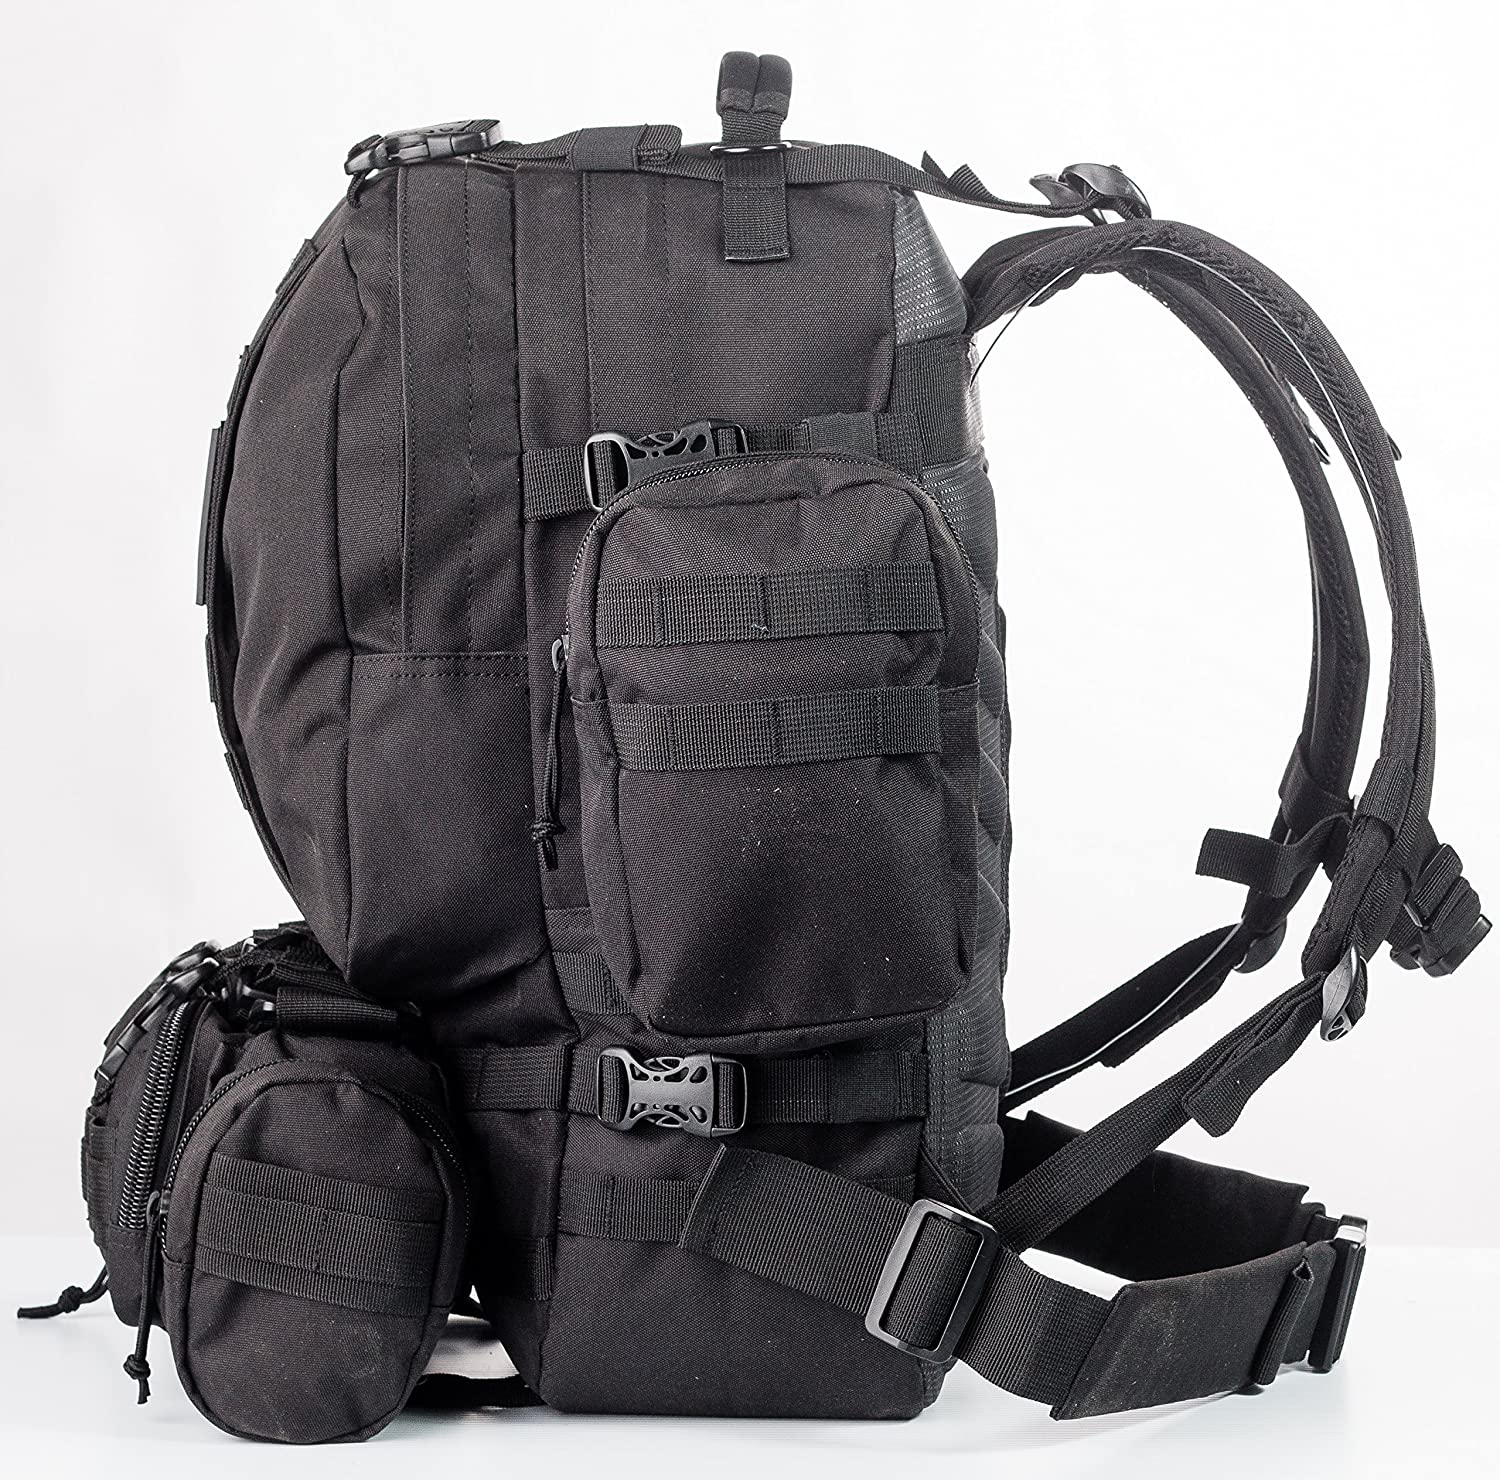 A1f8ZI3TEqL._SL1500_ amazon com paratus 3 day operator's pack military style molle  at alyssarenee.co